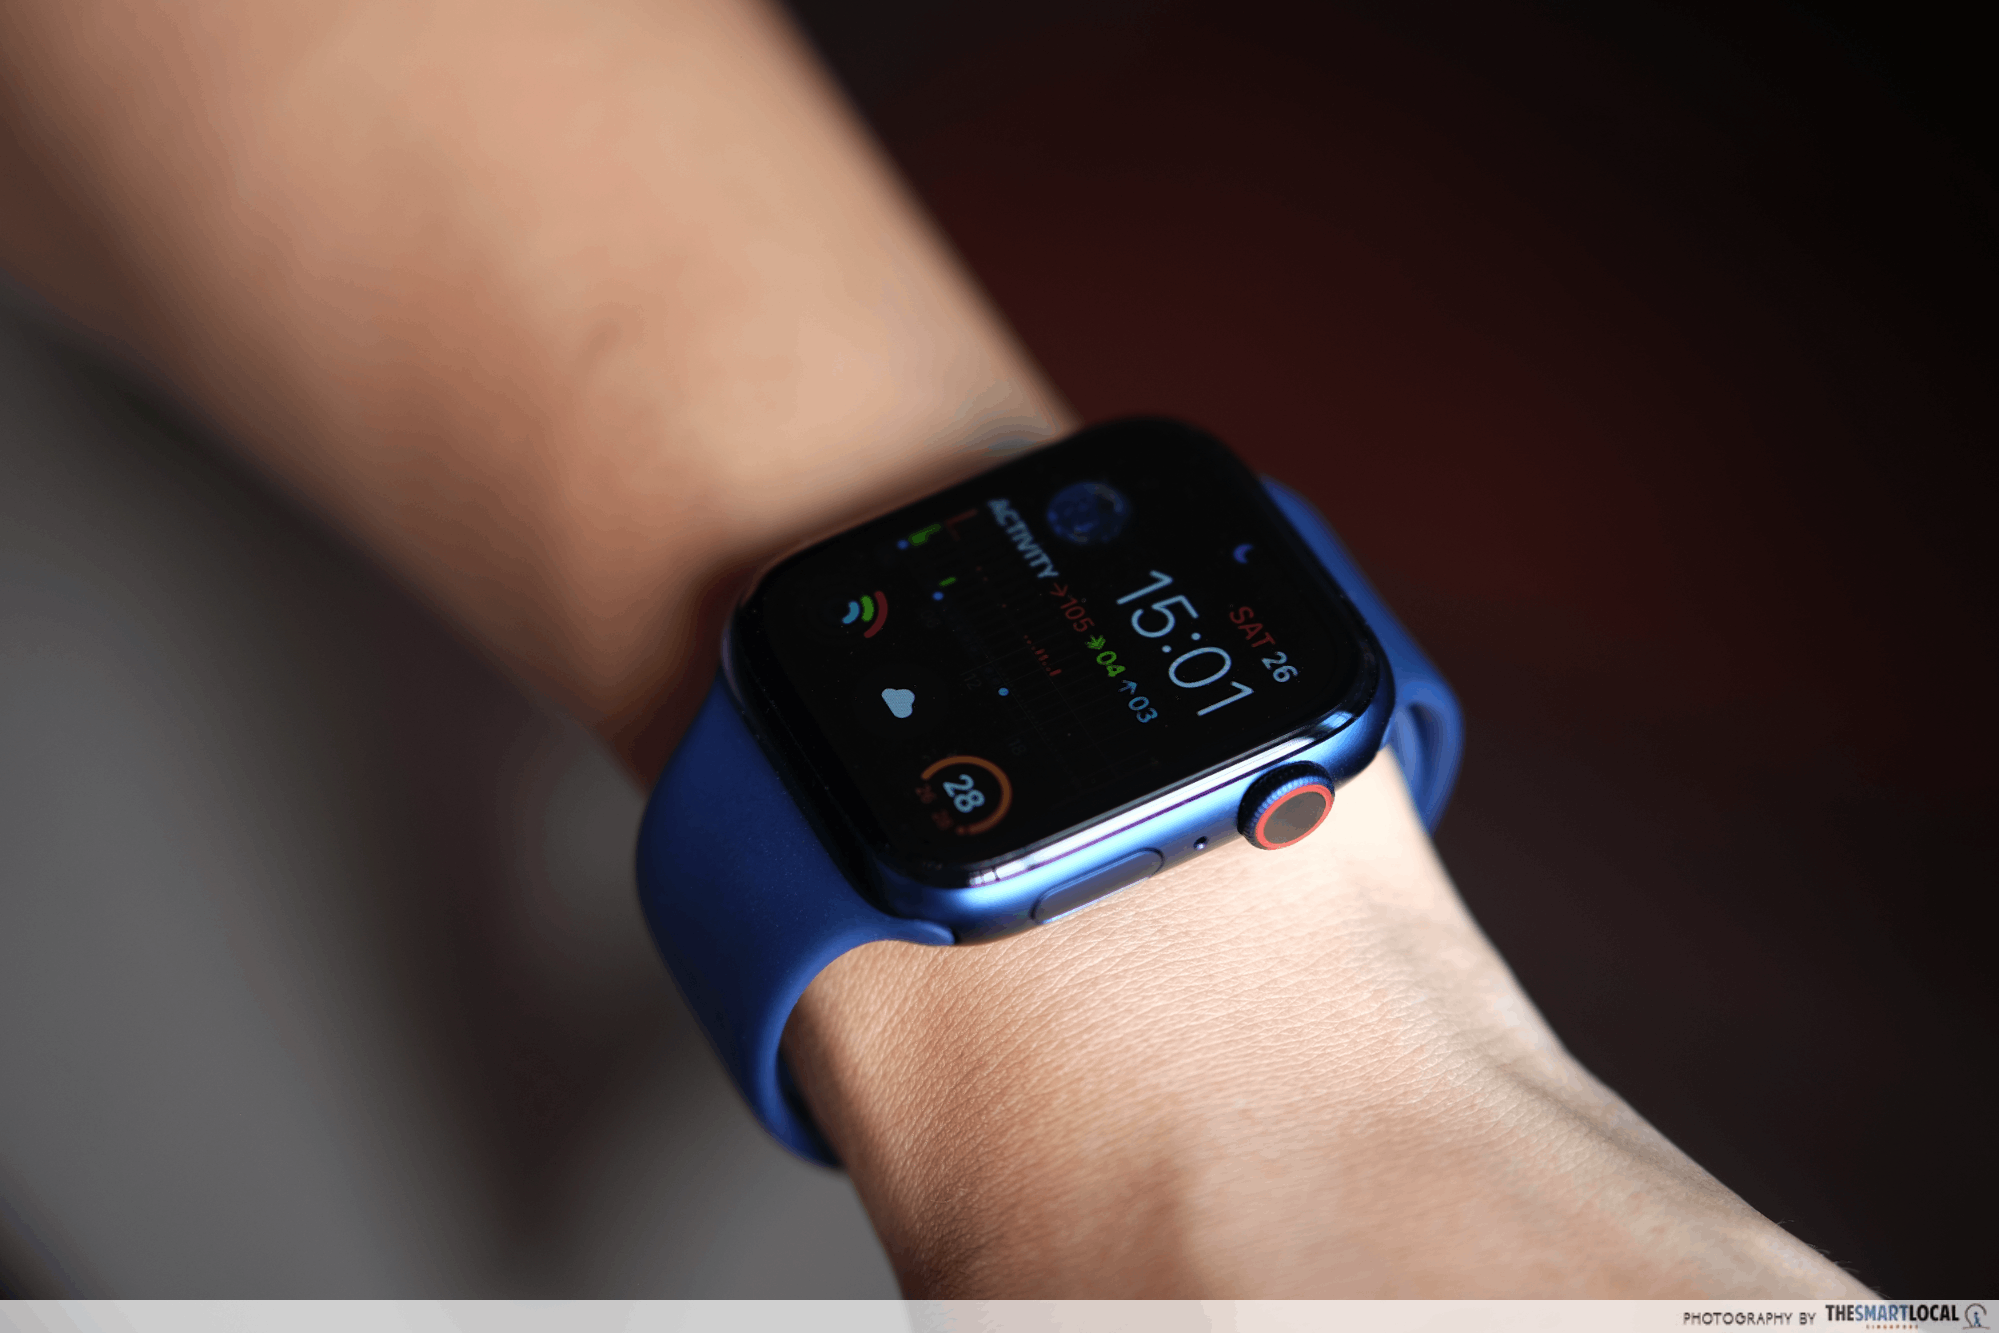 apple watch singapore 2020 price guide - series 6 in aluminium blue